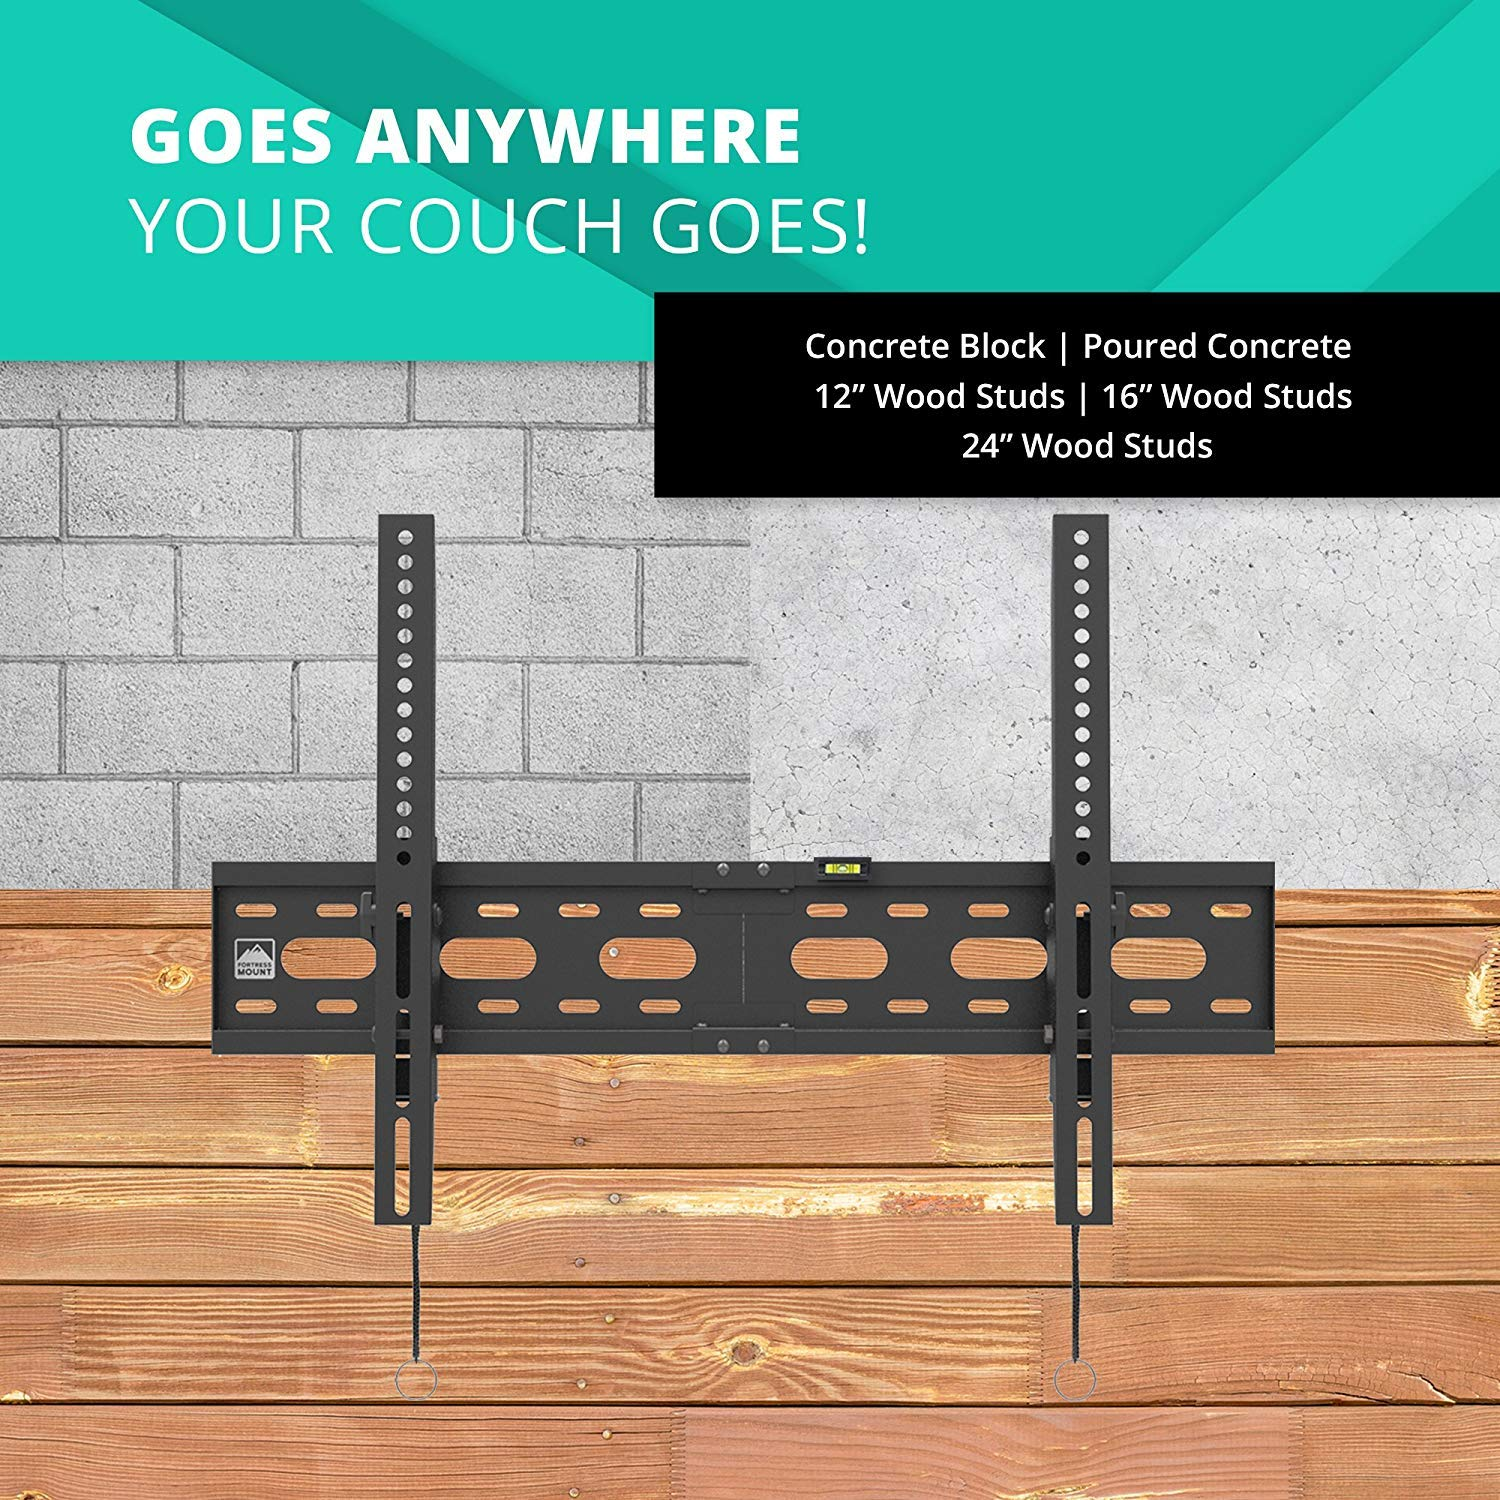 Fortress Mount TV Wall Mount for Most 40-75'' TVs up to 165 lbs and 9-feet HDMI Cable by Fortress Mount (Image #6)